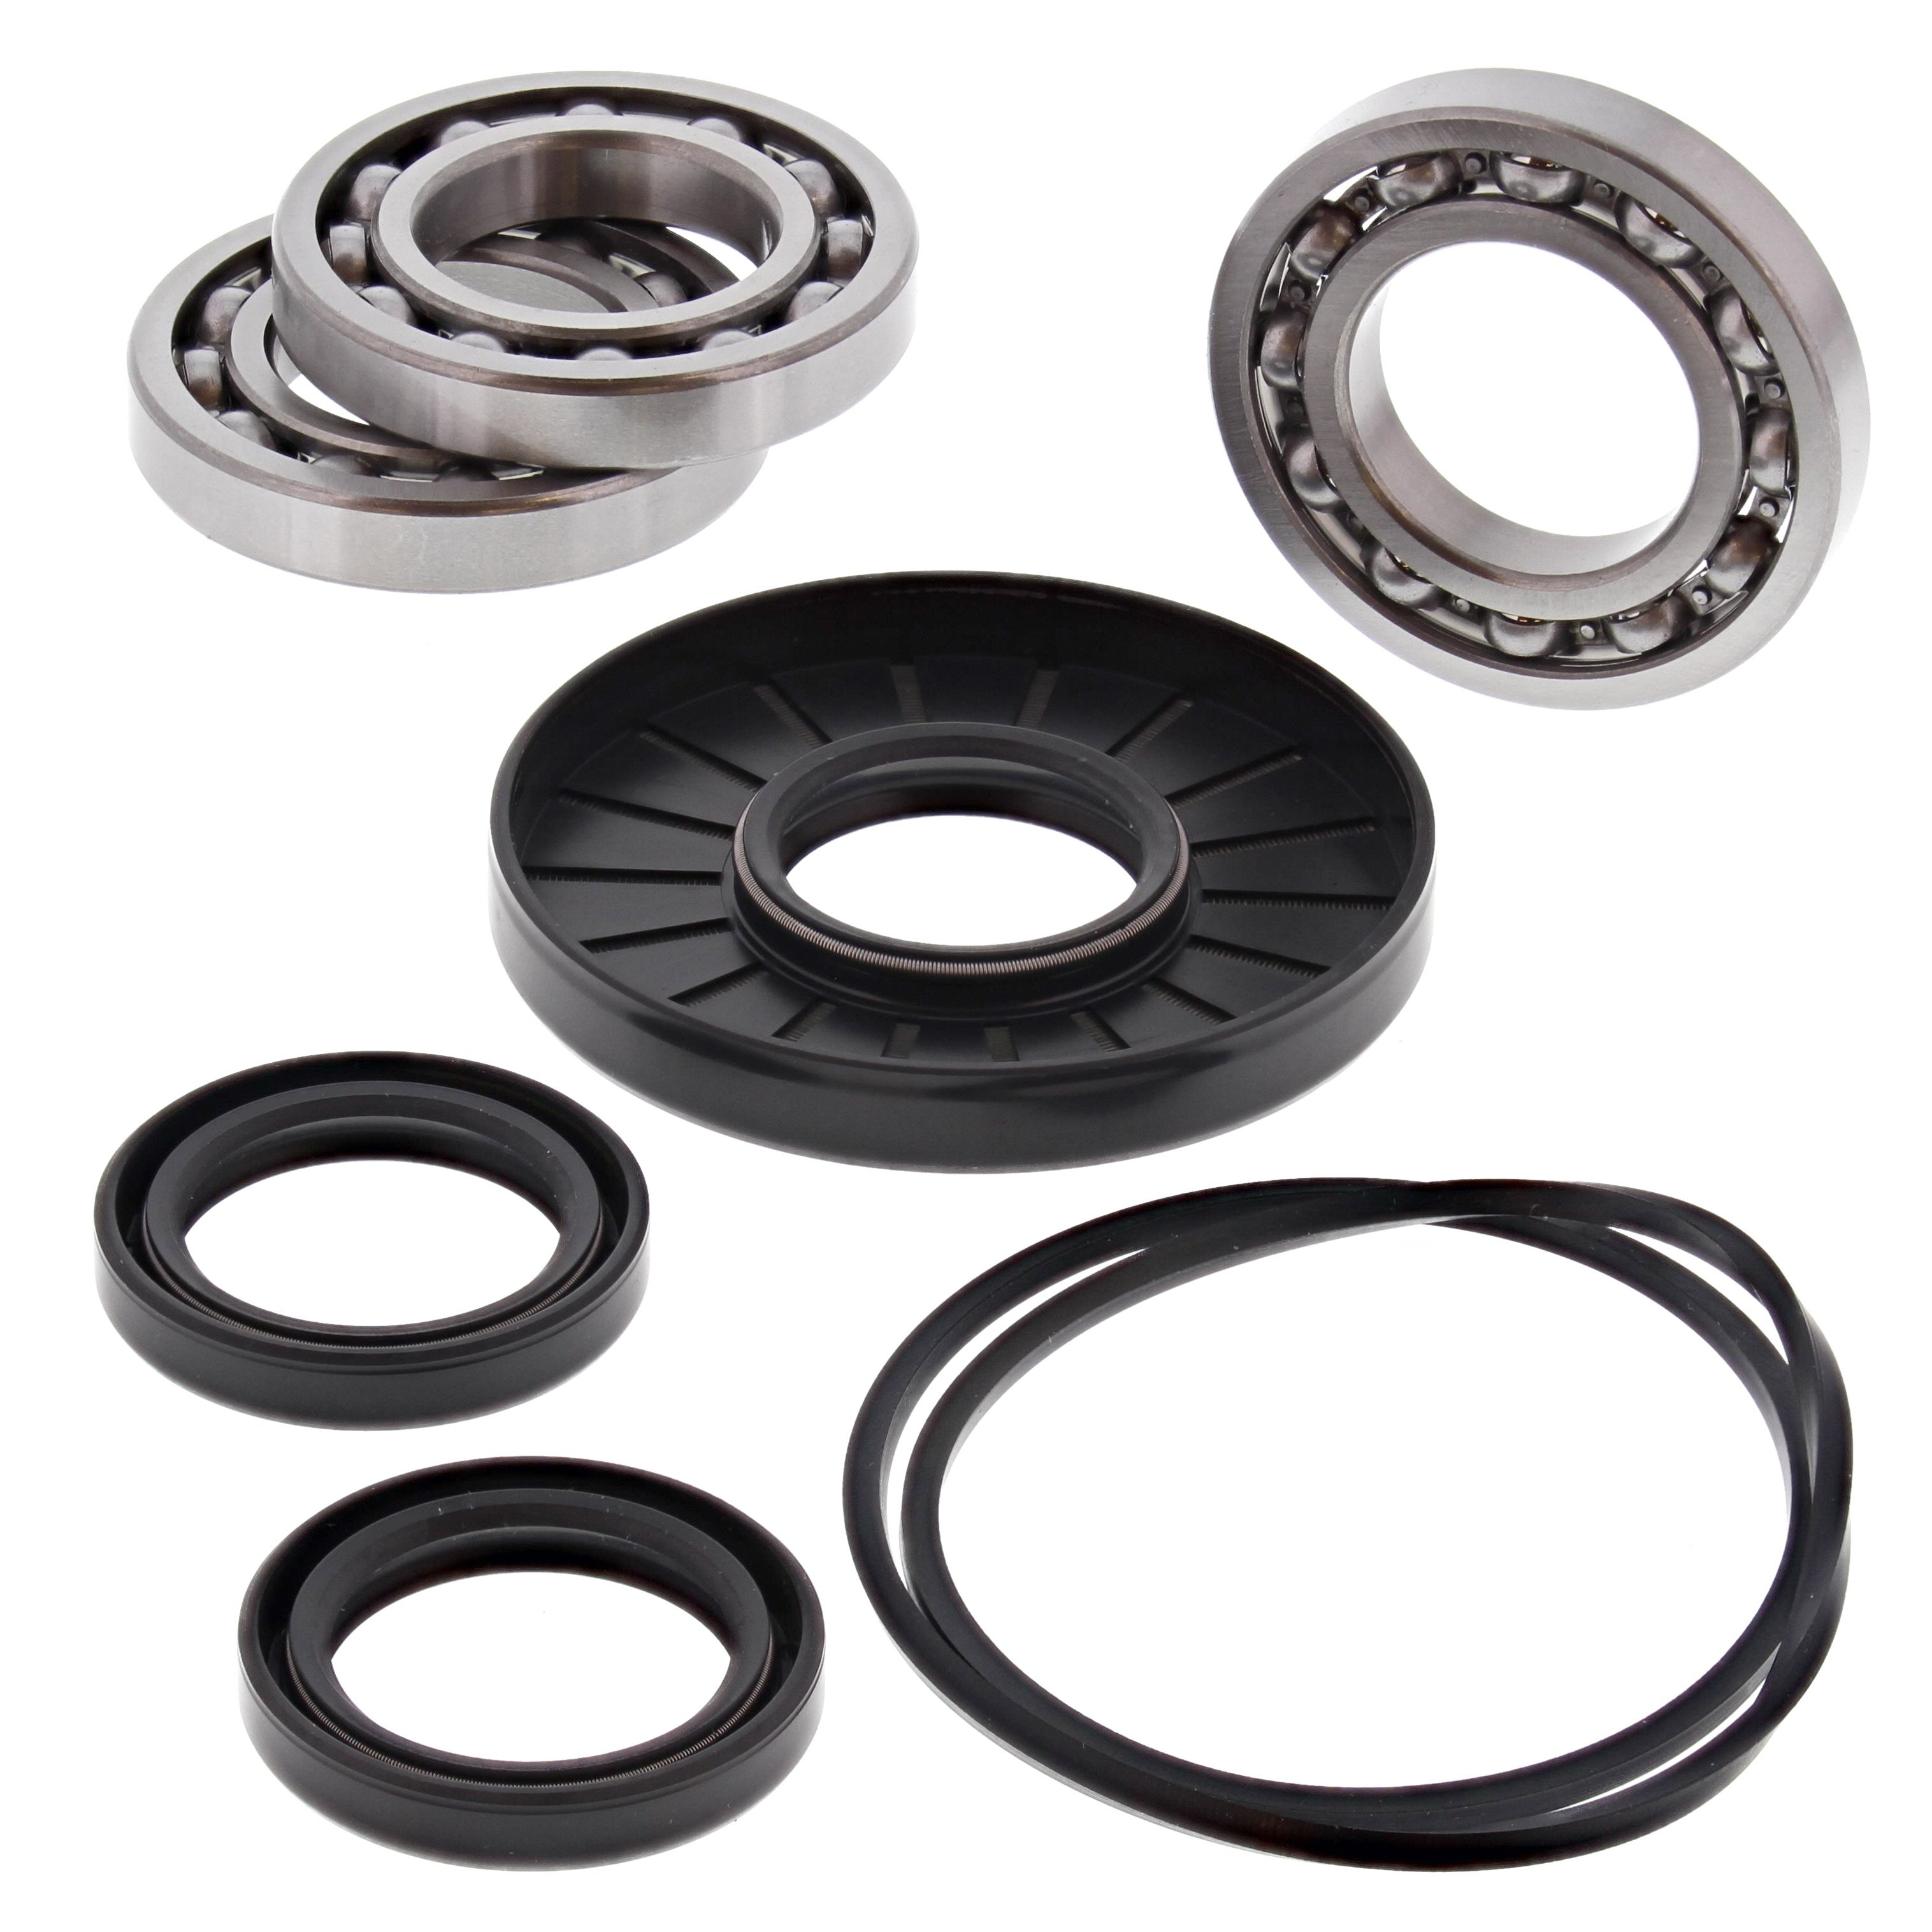 ALL BALLS FRONT WHEEL BEARING KIT FITS POLARIS SPORTSMAN 570 2014